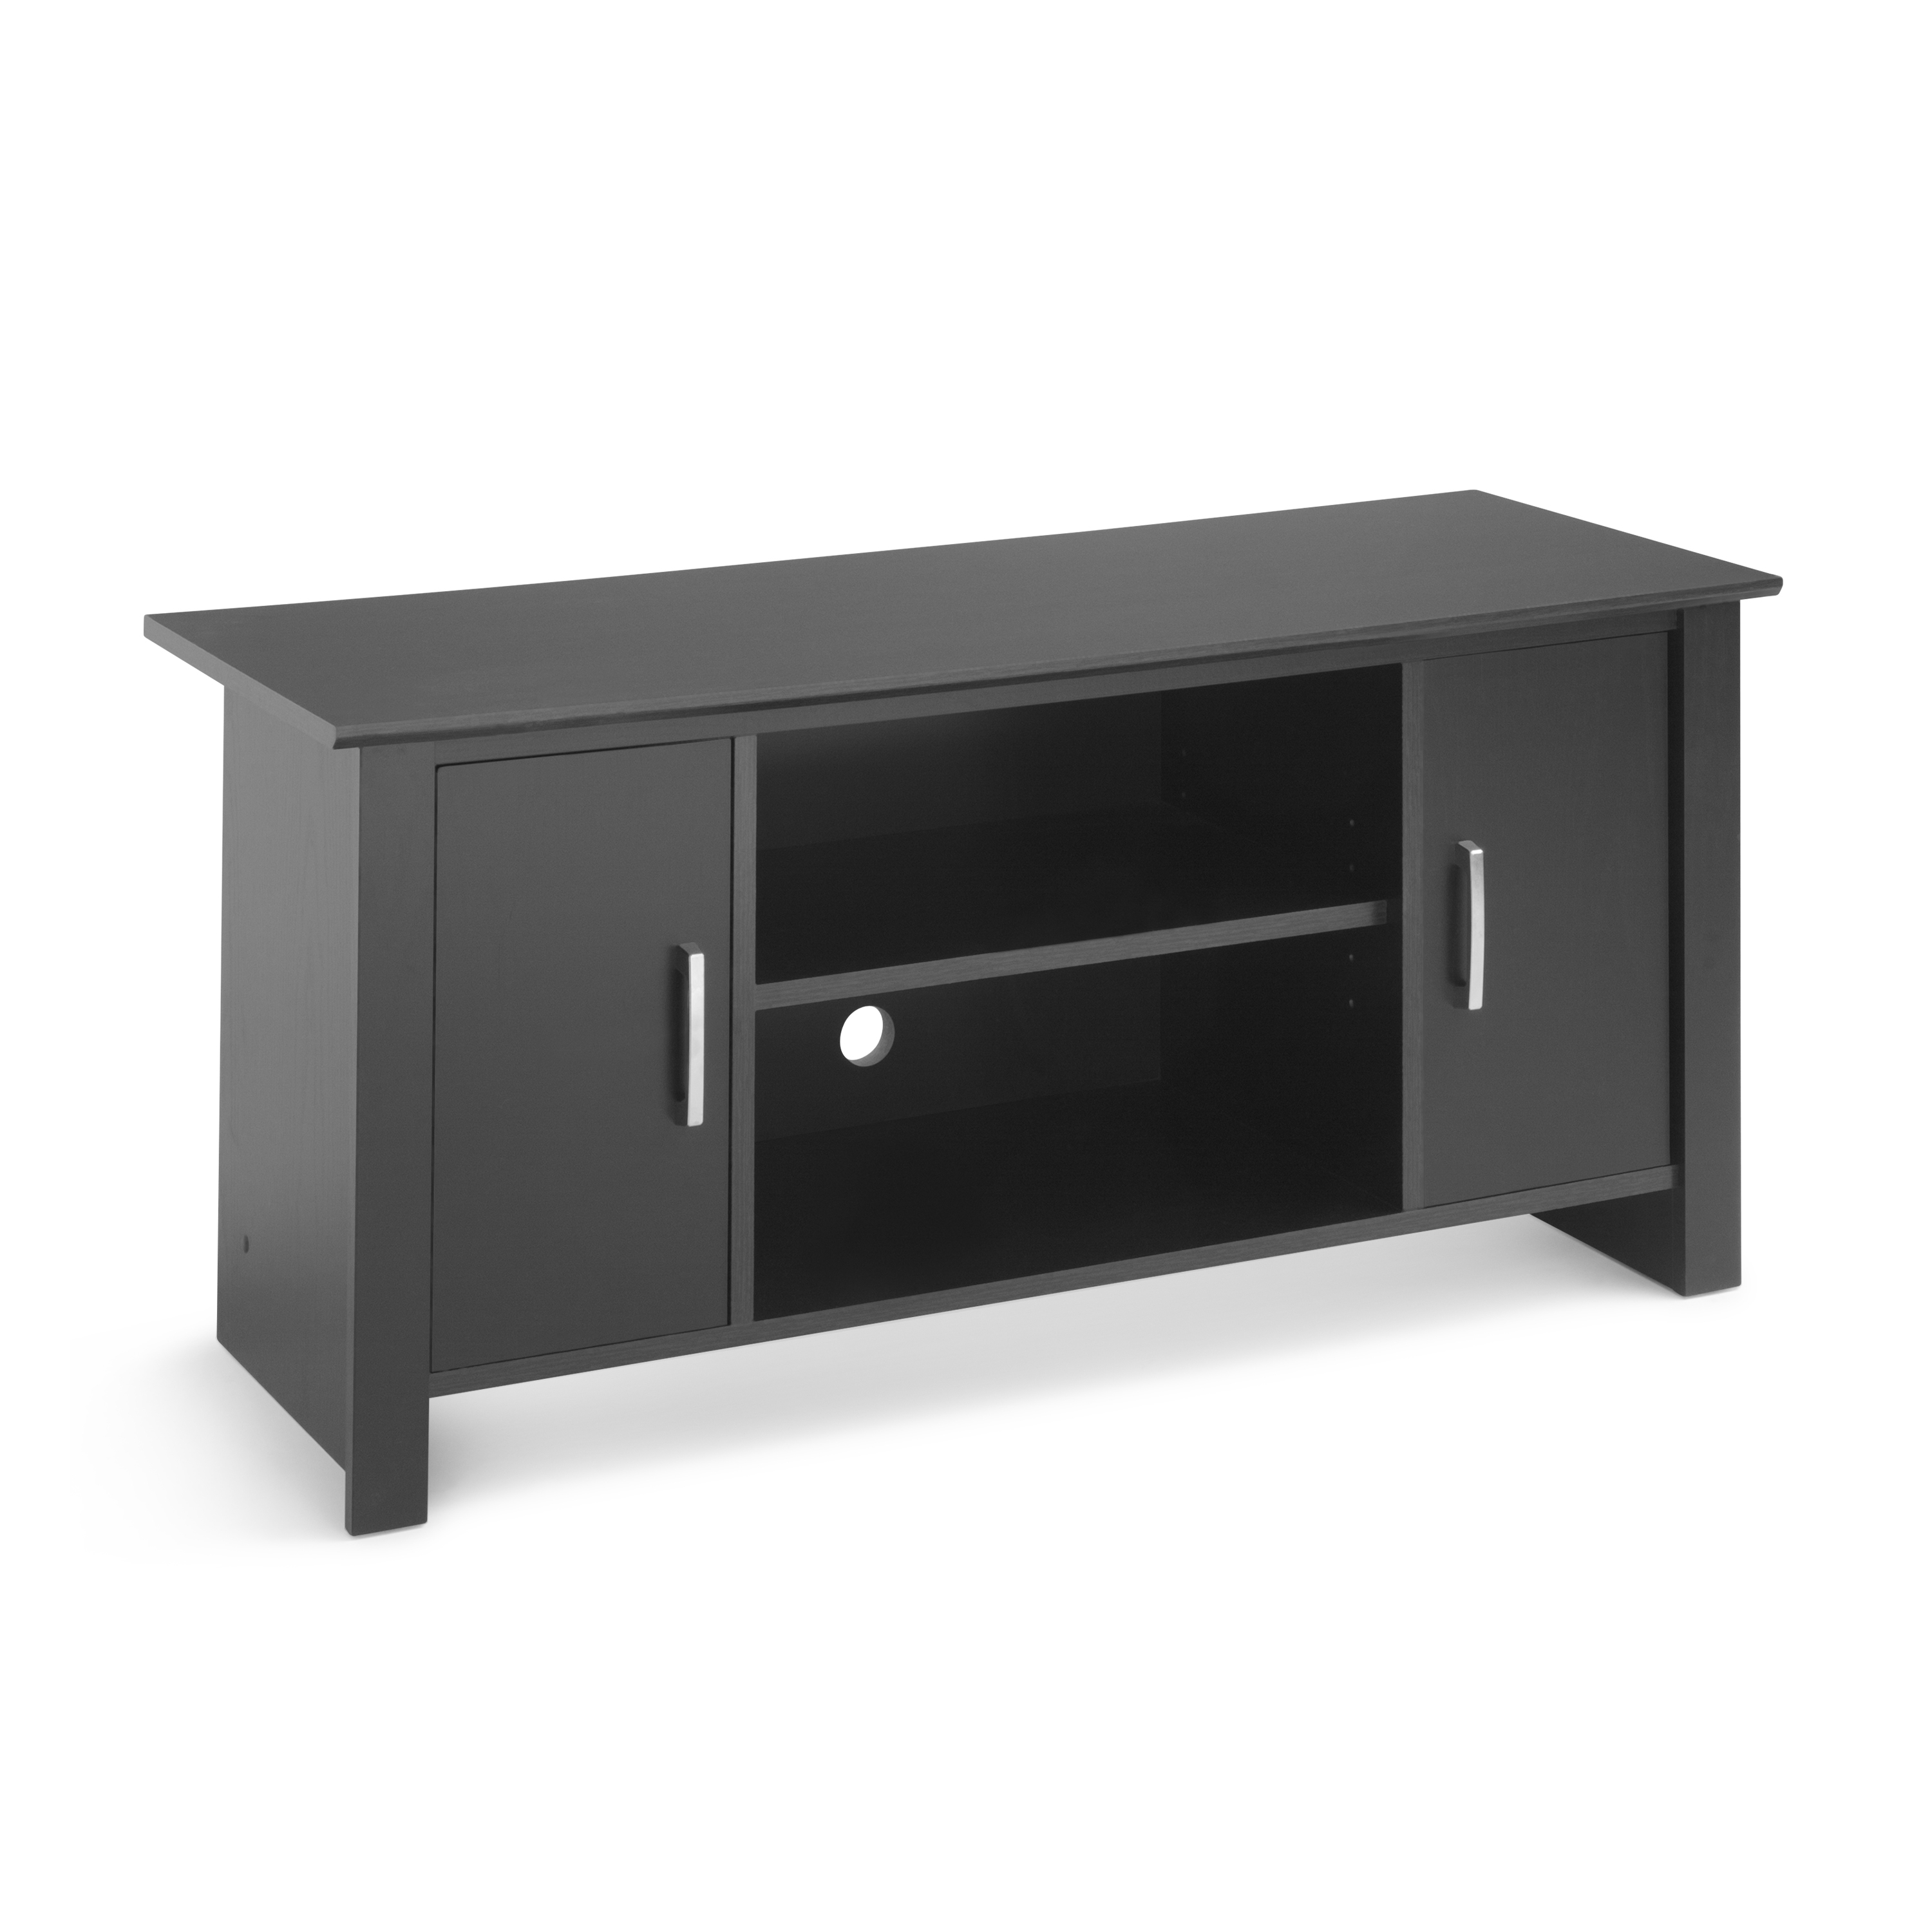 """Mainstays Tv Stand For Flat Screen Tvs Up To 47"""", Canyon Walnut Regarding Canyon 64 Inch Tv Stands (View 8 of 20)"""